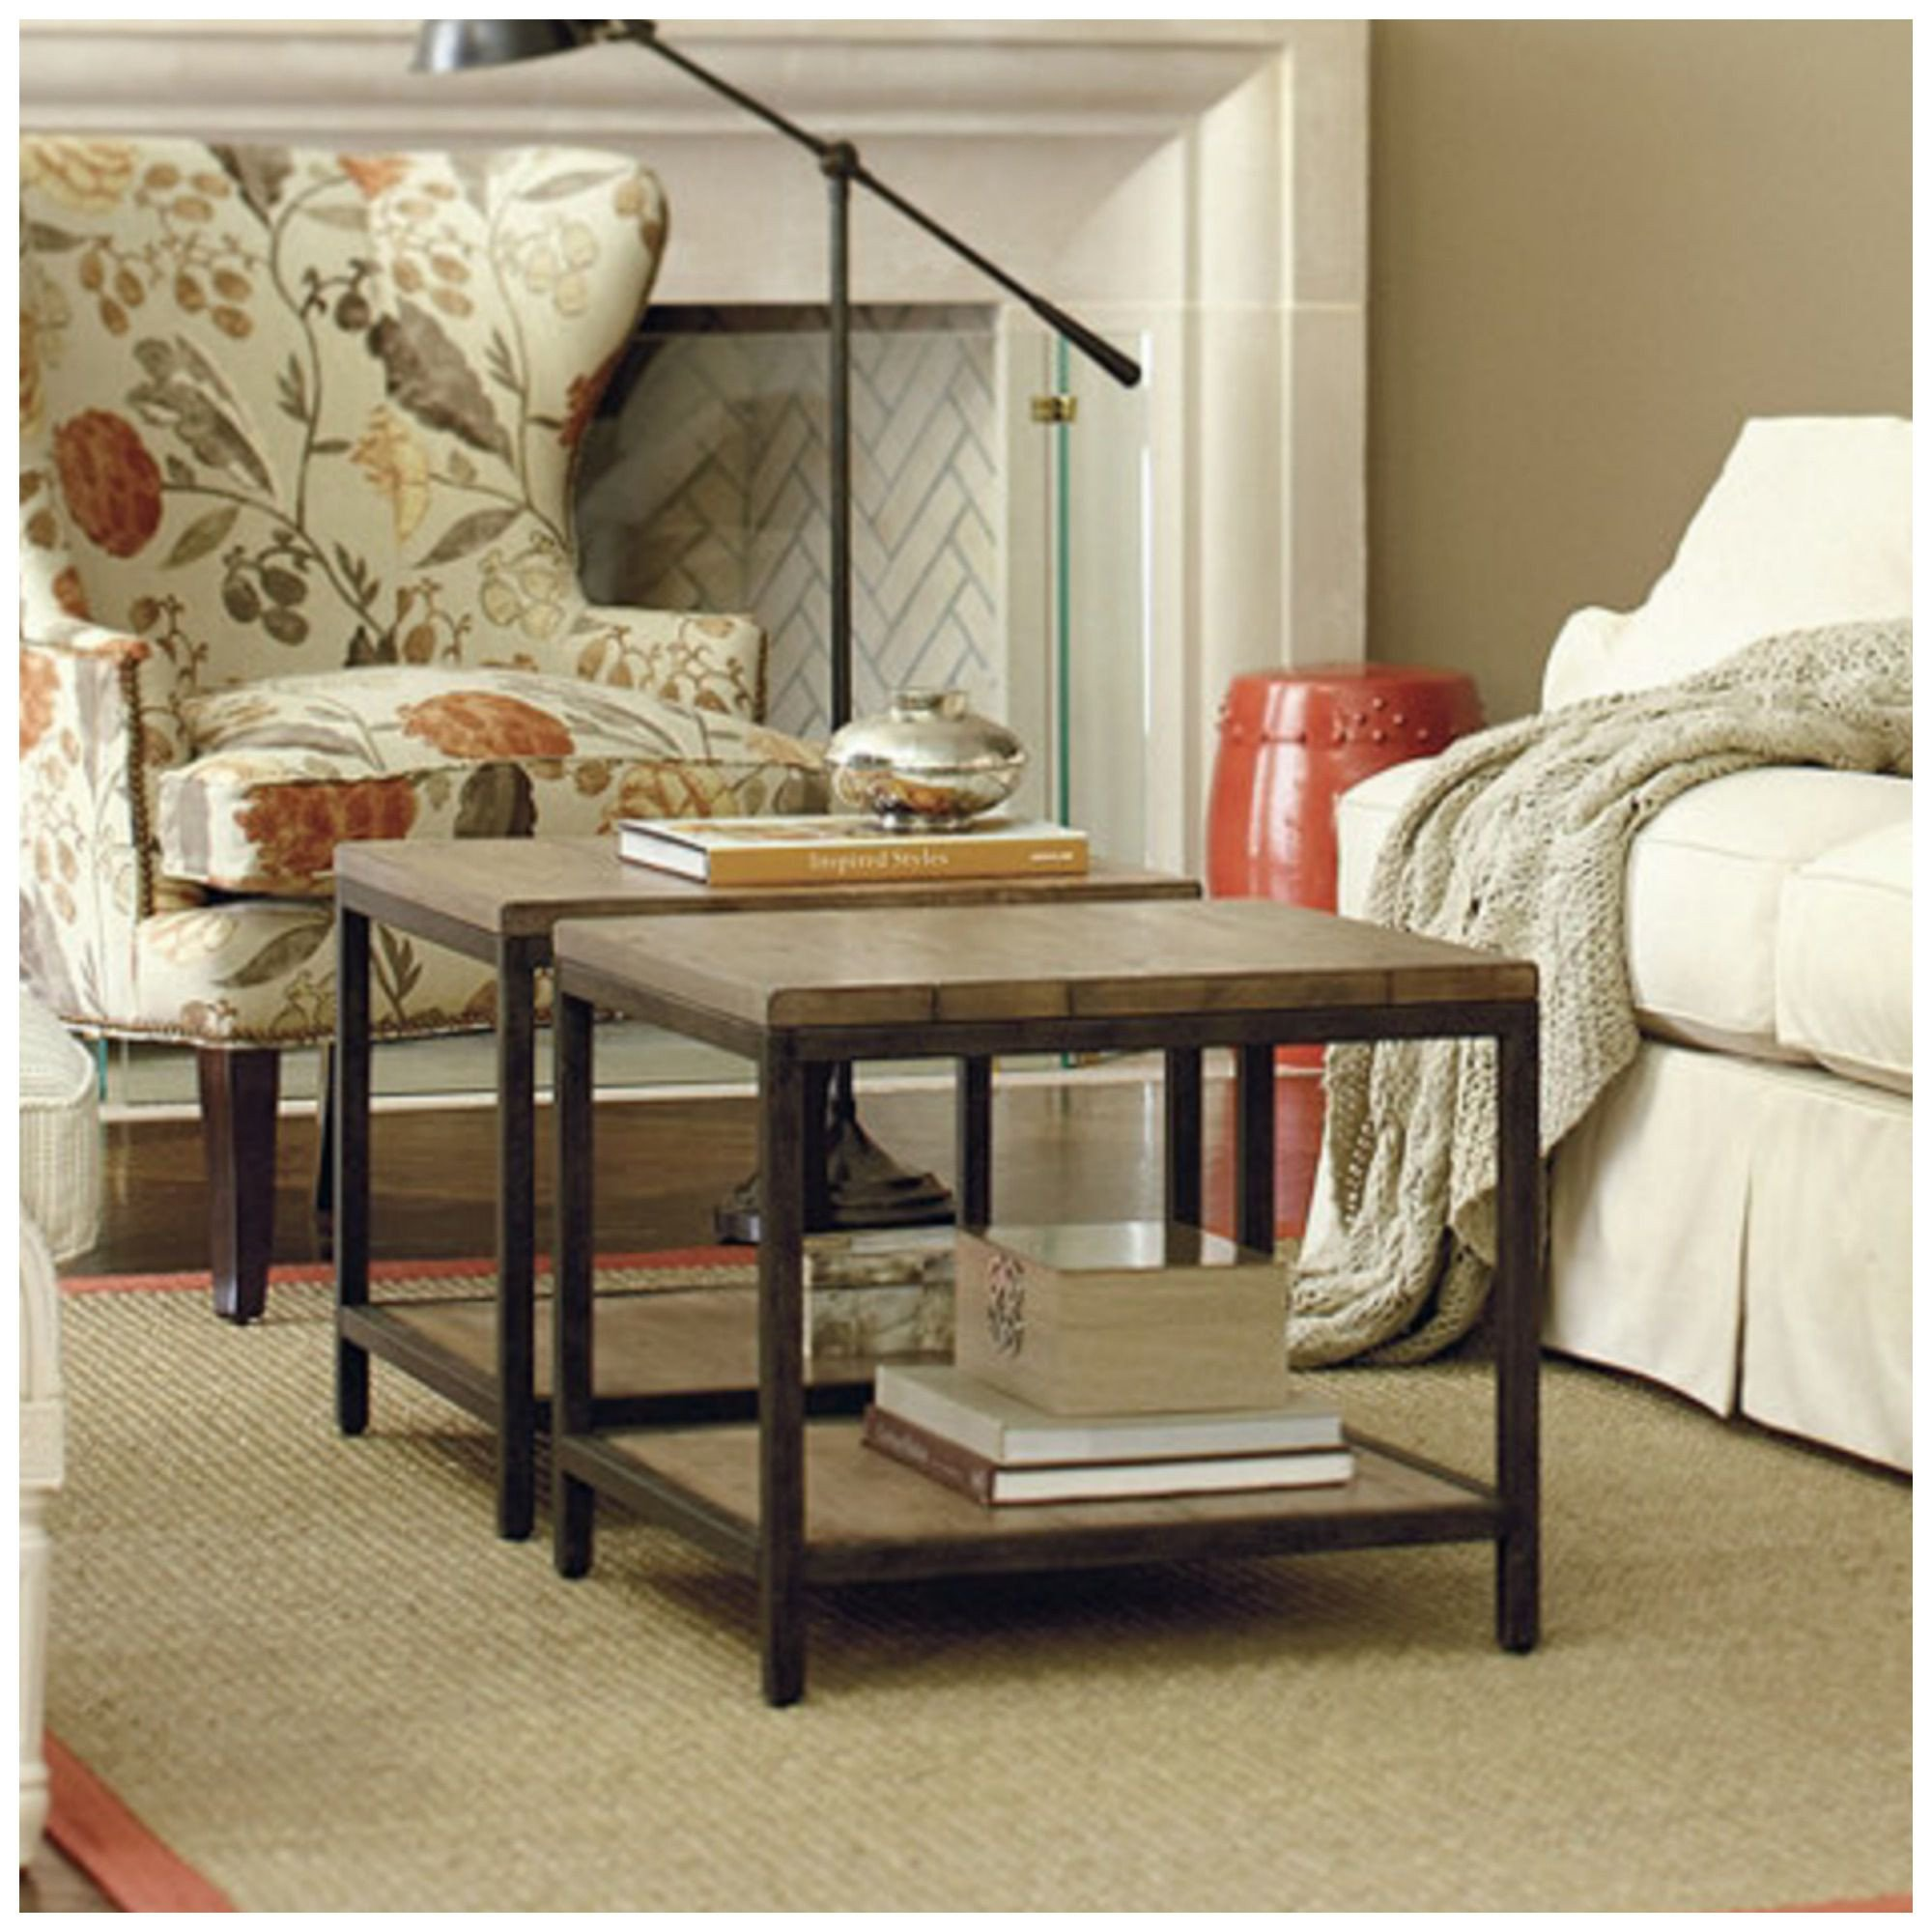 Decor for Living Room Tables Inspirational 7 Coffee Table Alternatives for Small Living Rooms